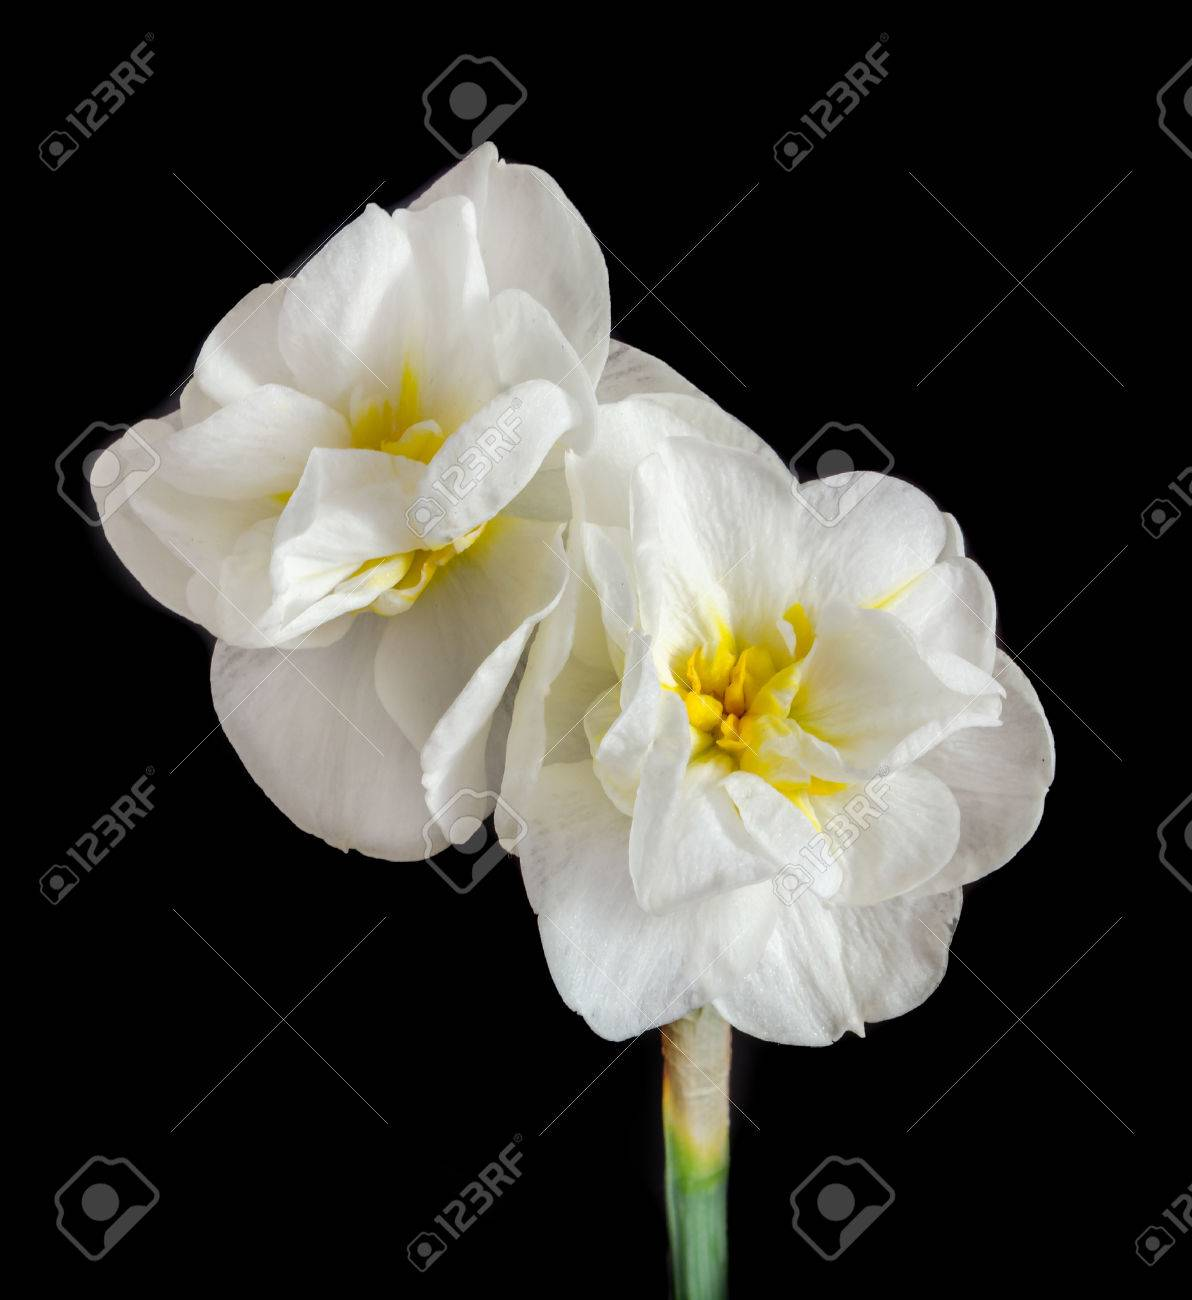 White daffodil flowers narcissus yellow middle pistil close white daffodil flowers narcissus yellow middle pistil close up black background mightylinksfo